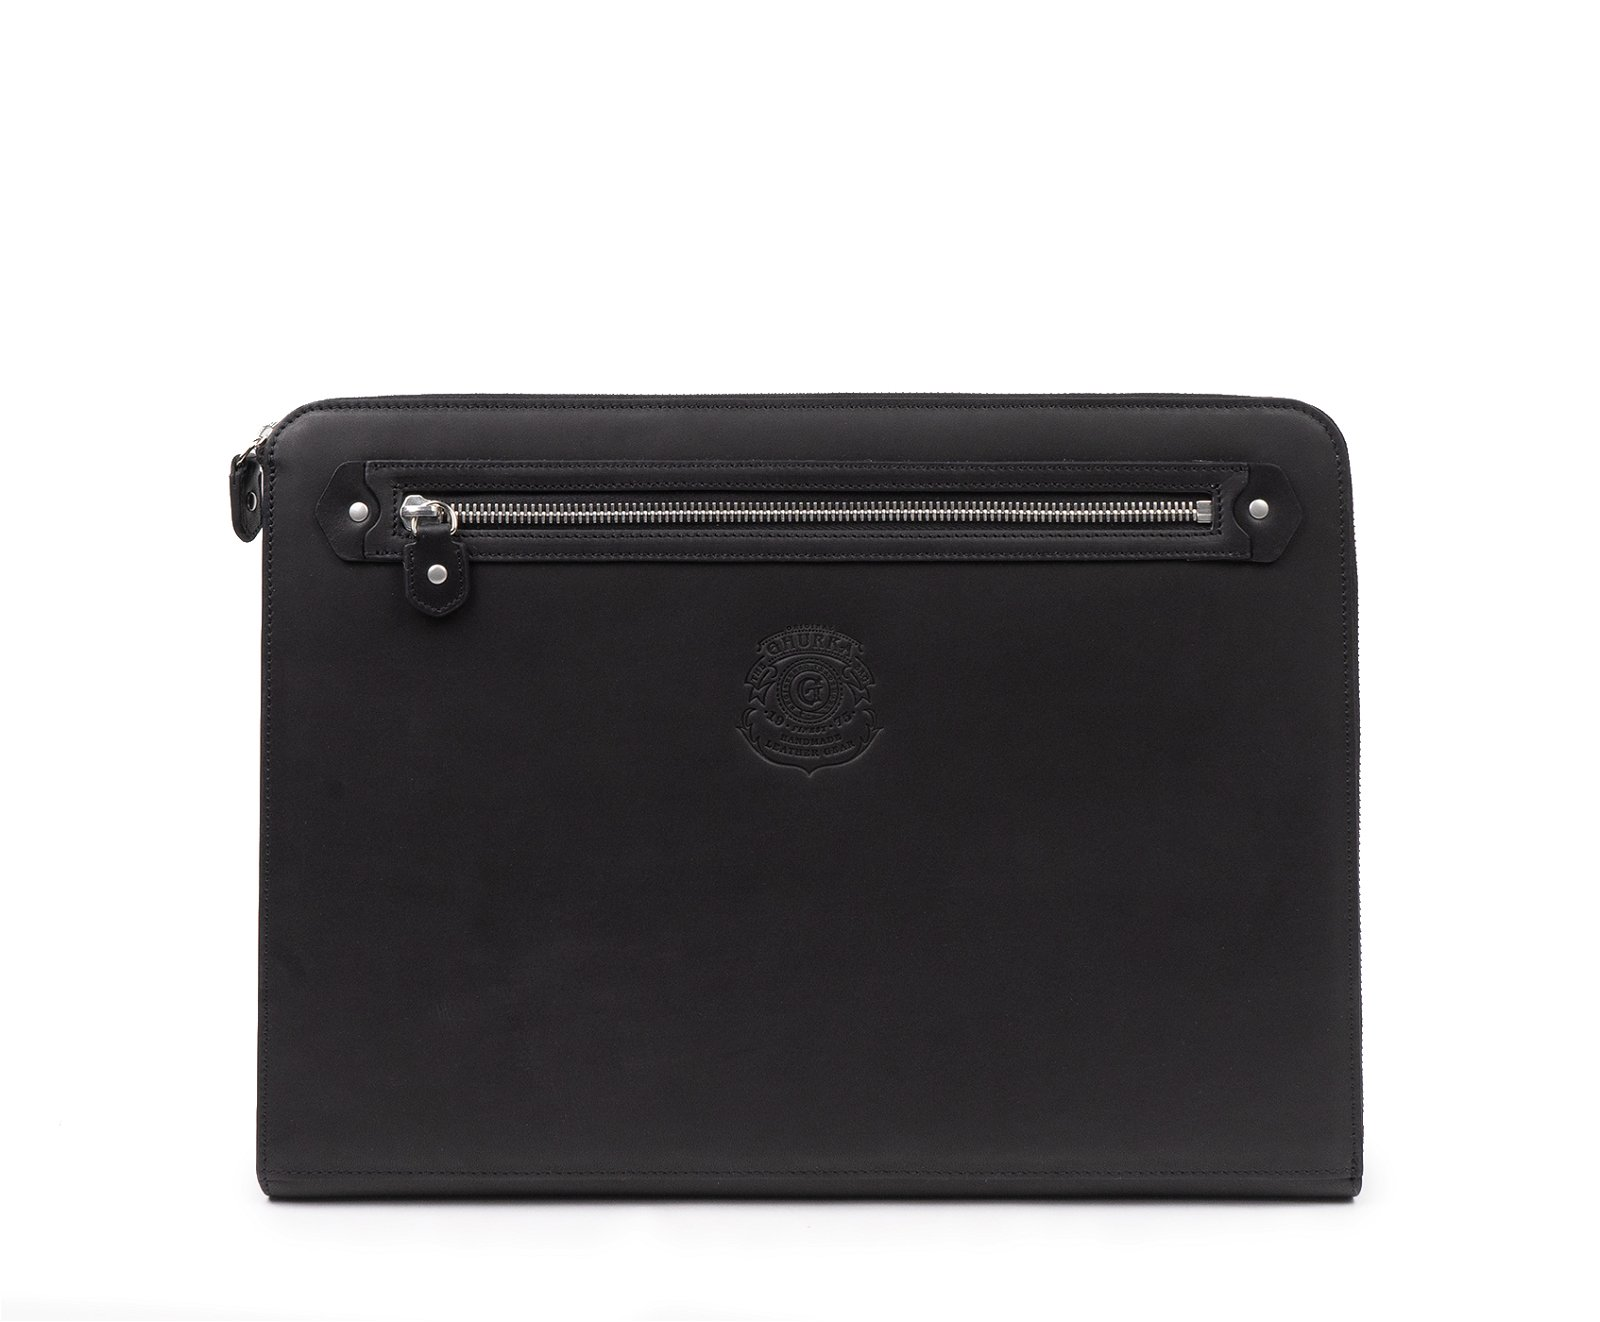 LAPTOP CASE | $395